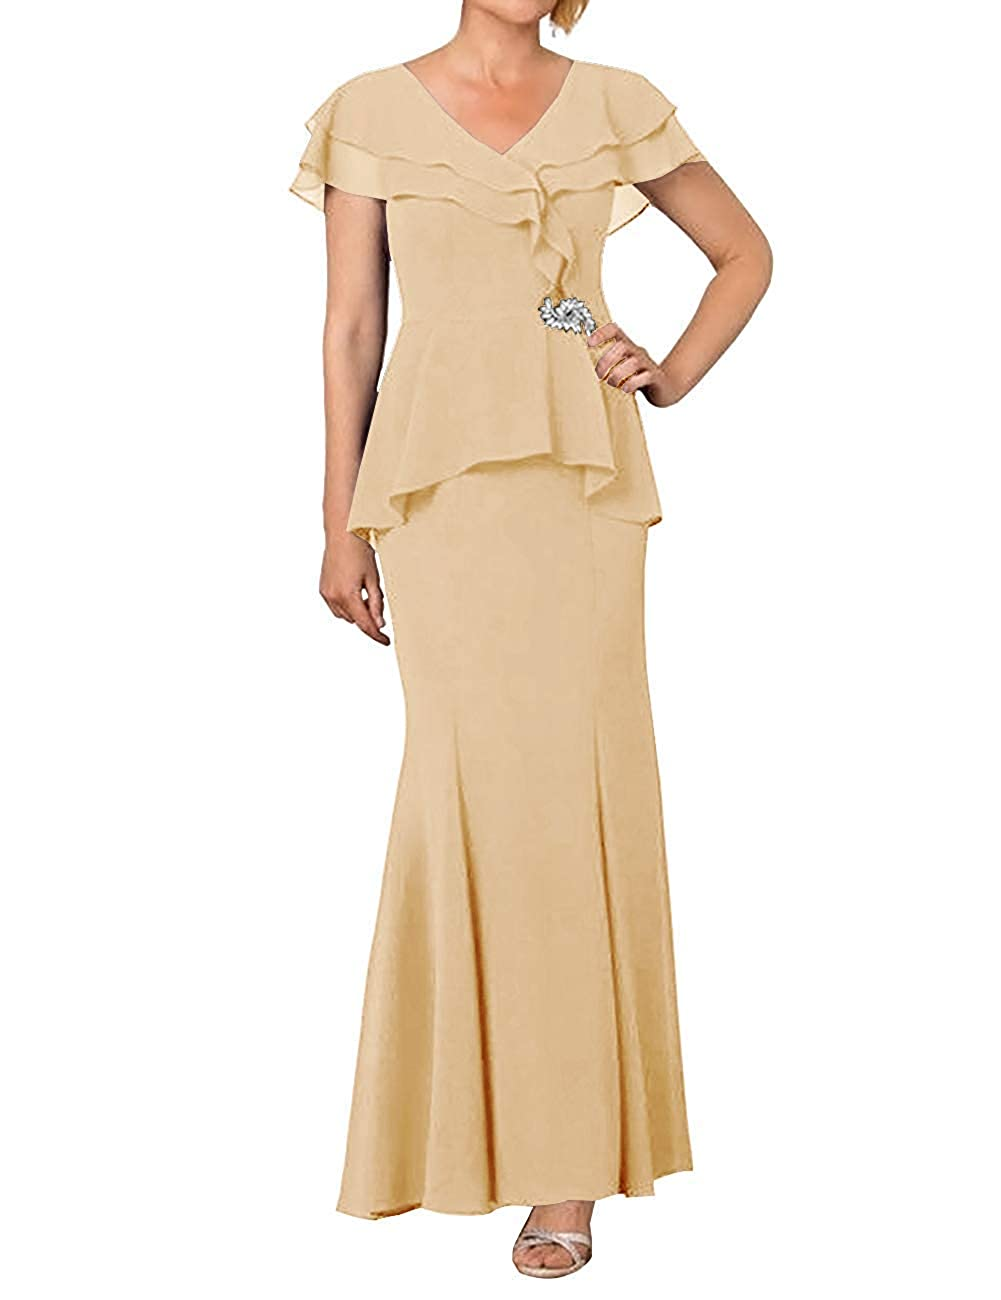 Champagne ZLQQ Womens Mother of The Bride Dress 2019 Cap Sleeve V Neck Formal Evening Gown